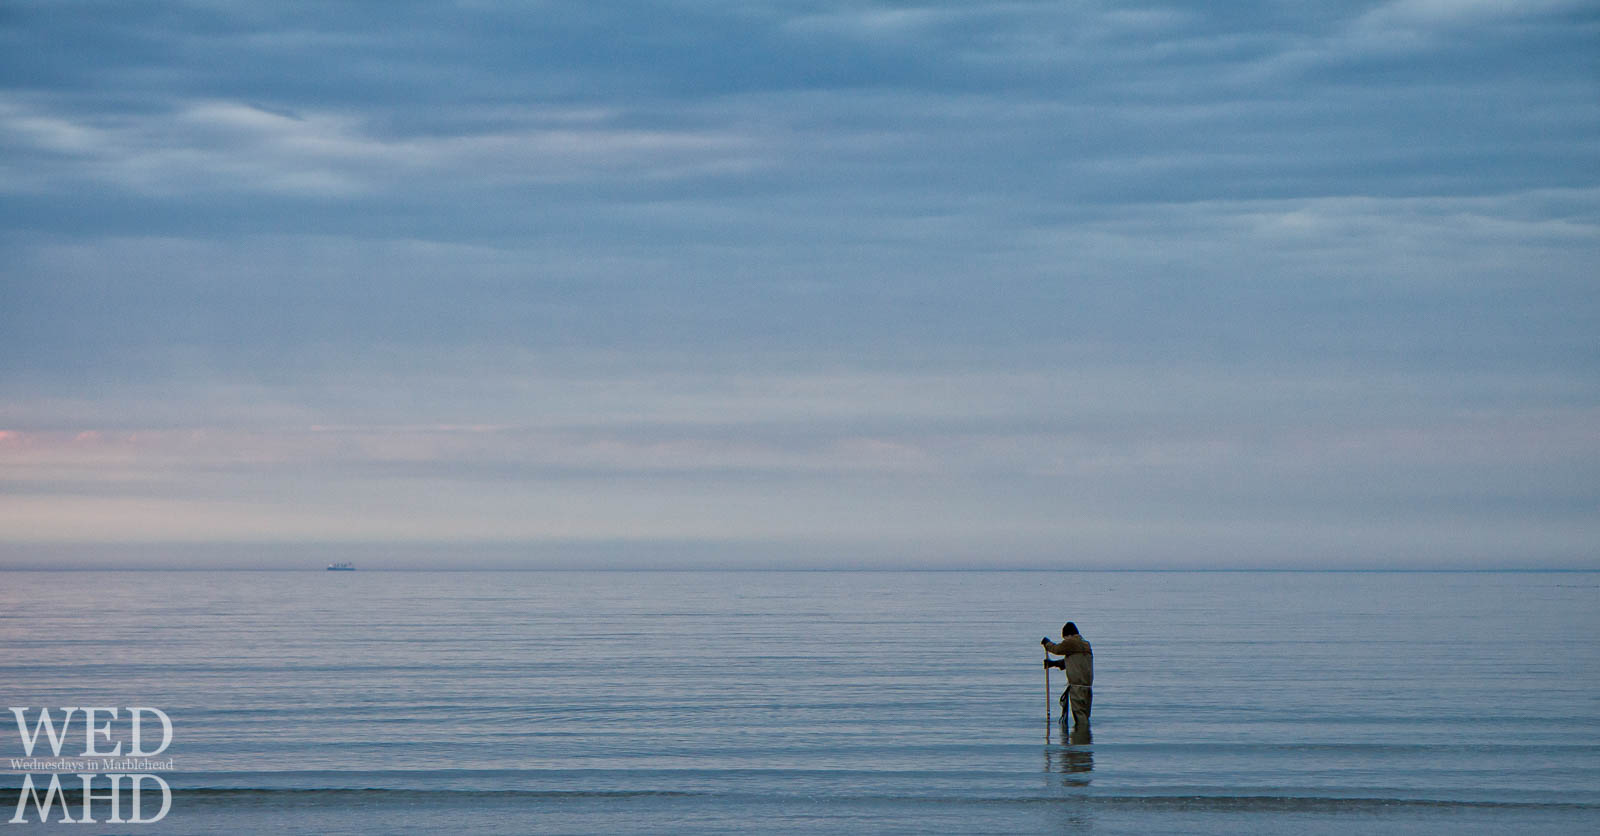 A person digs for clams in the water at dawn in the ocean